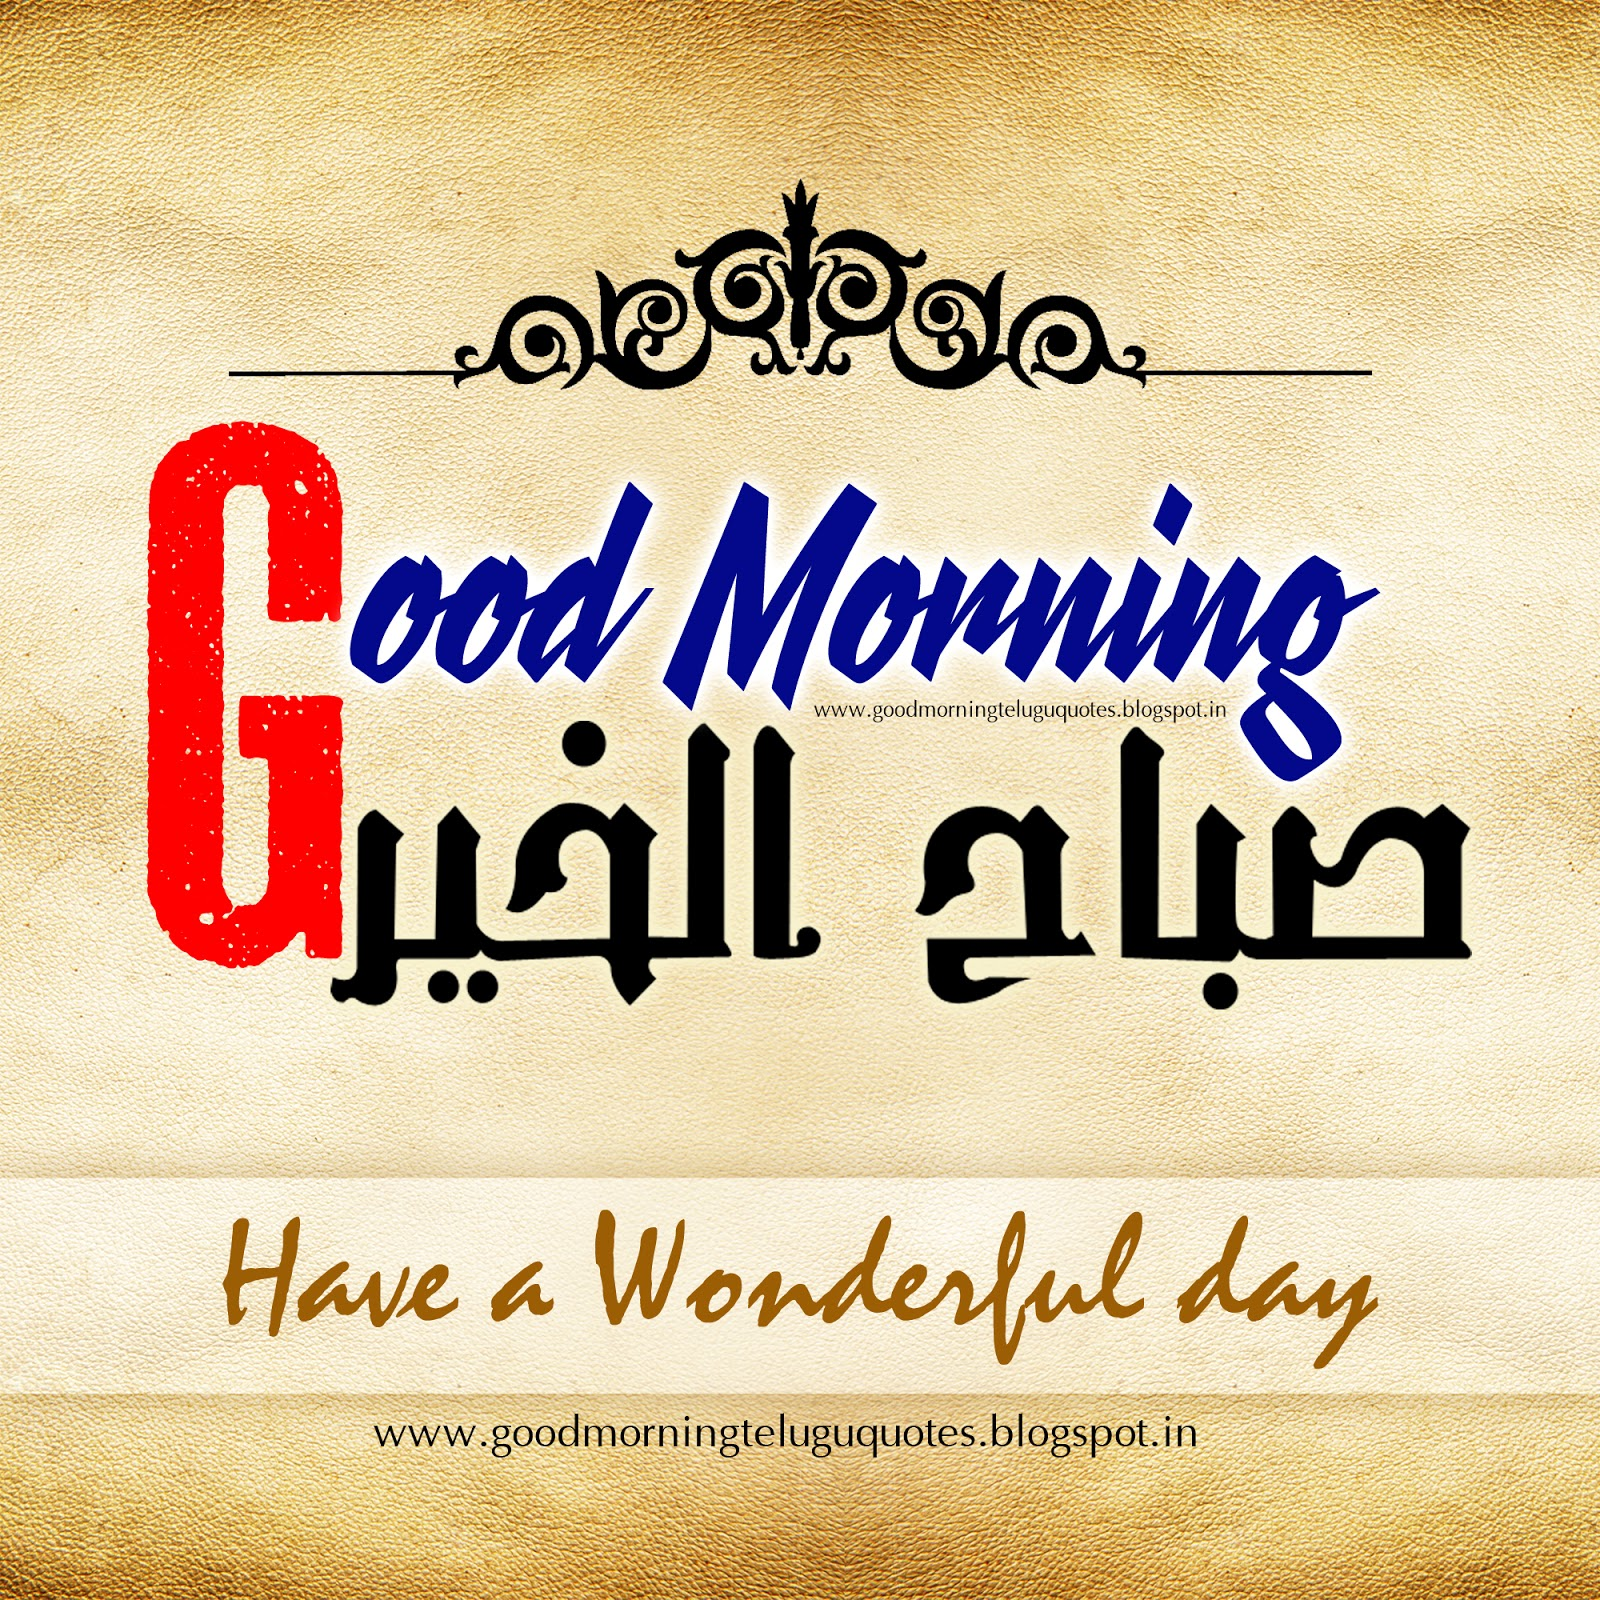 Best good morning in arabic quotes image collection good morning in arabic language greetings live youtube m4hsunfo